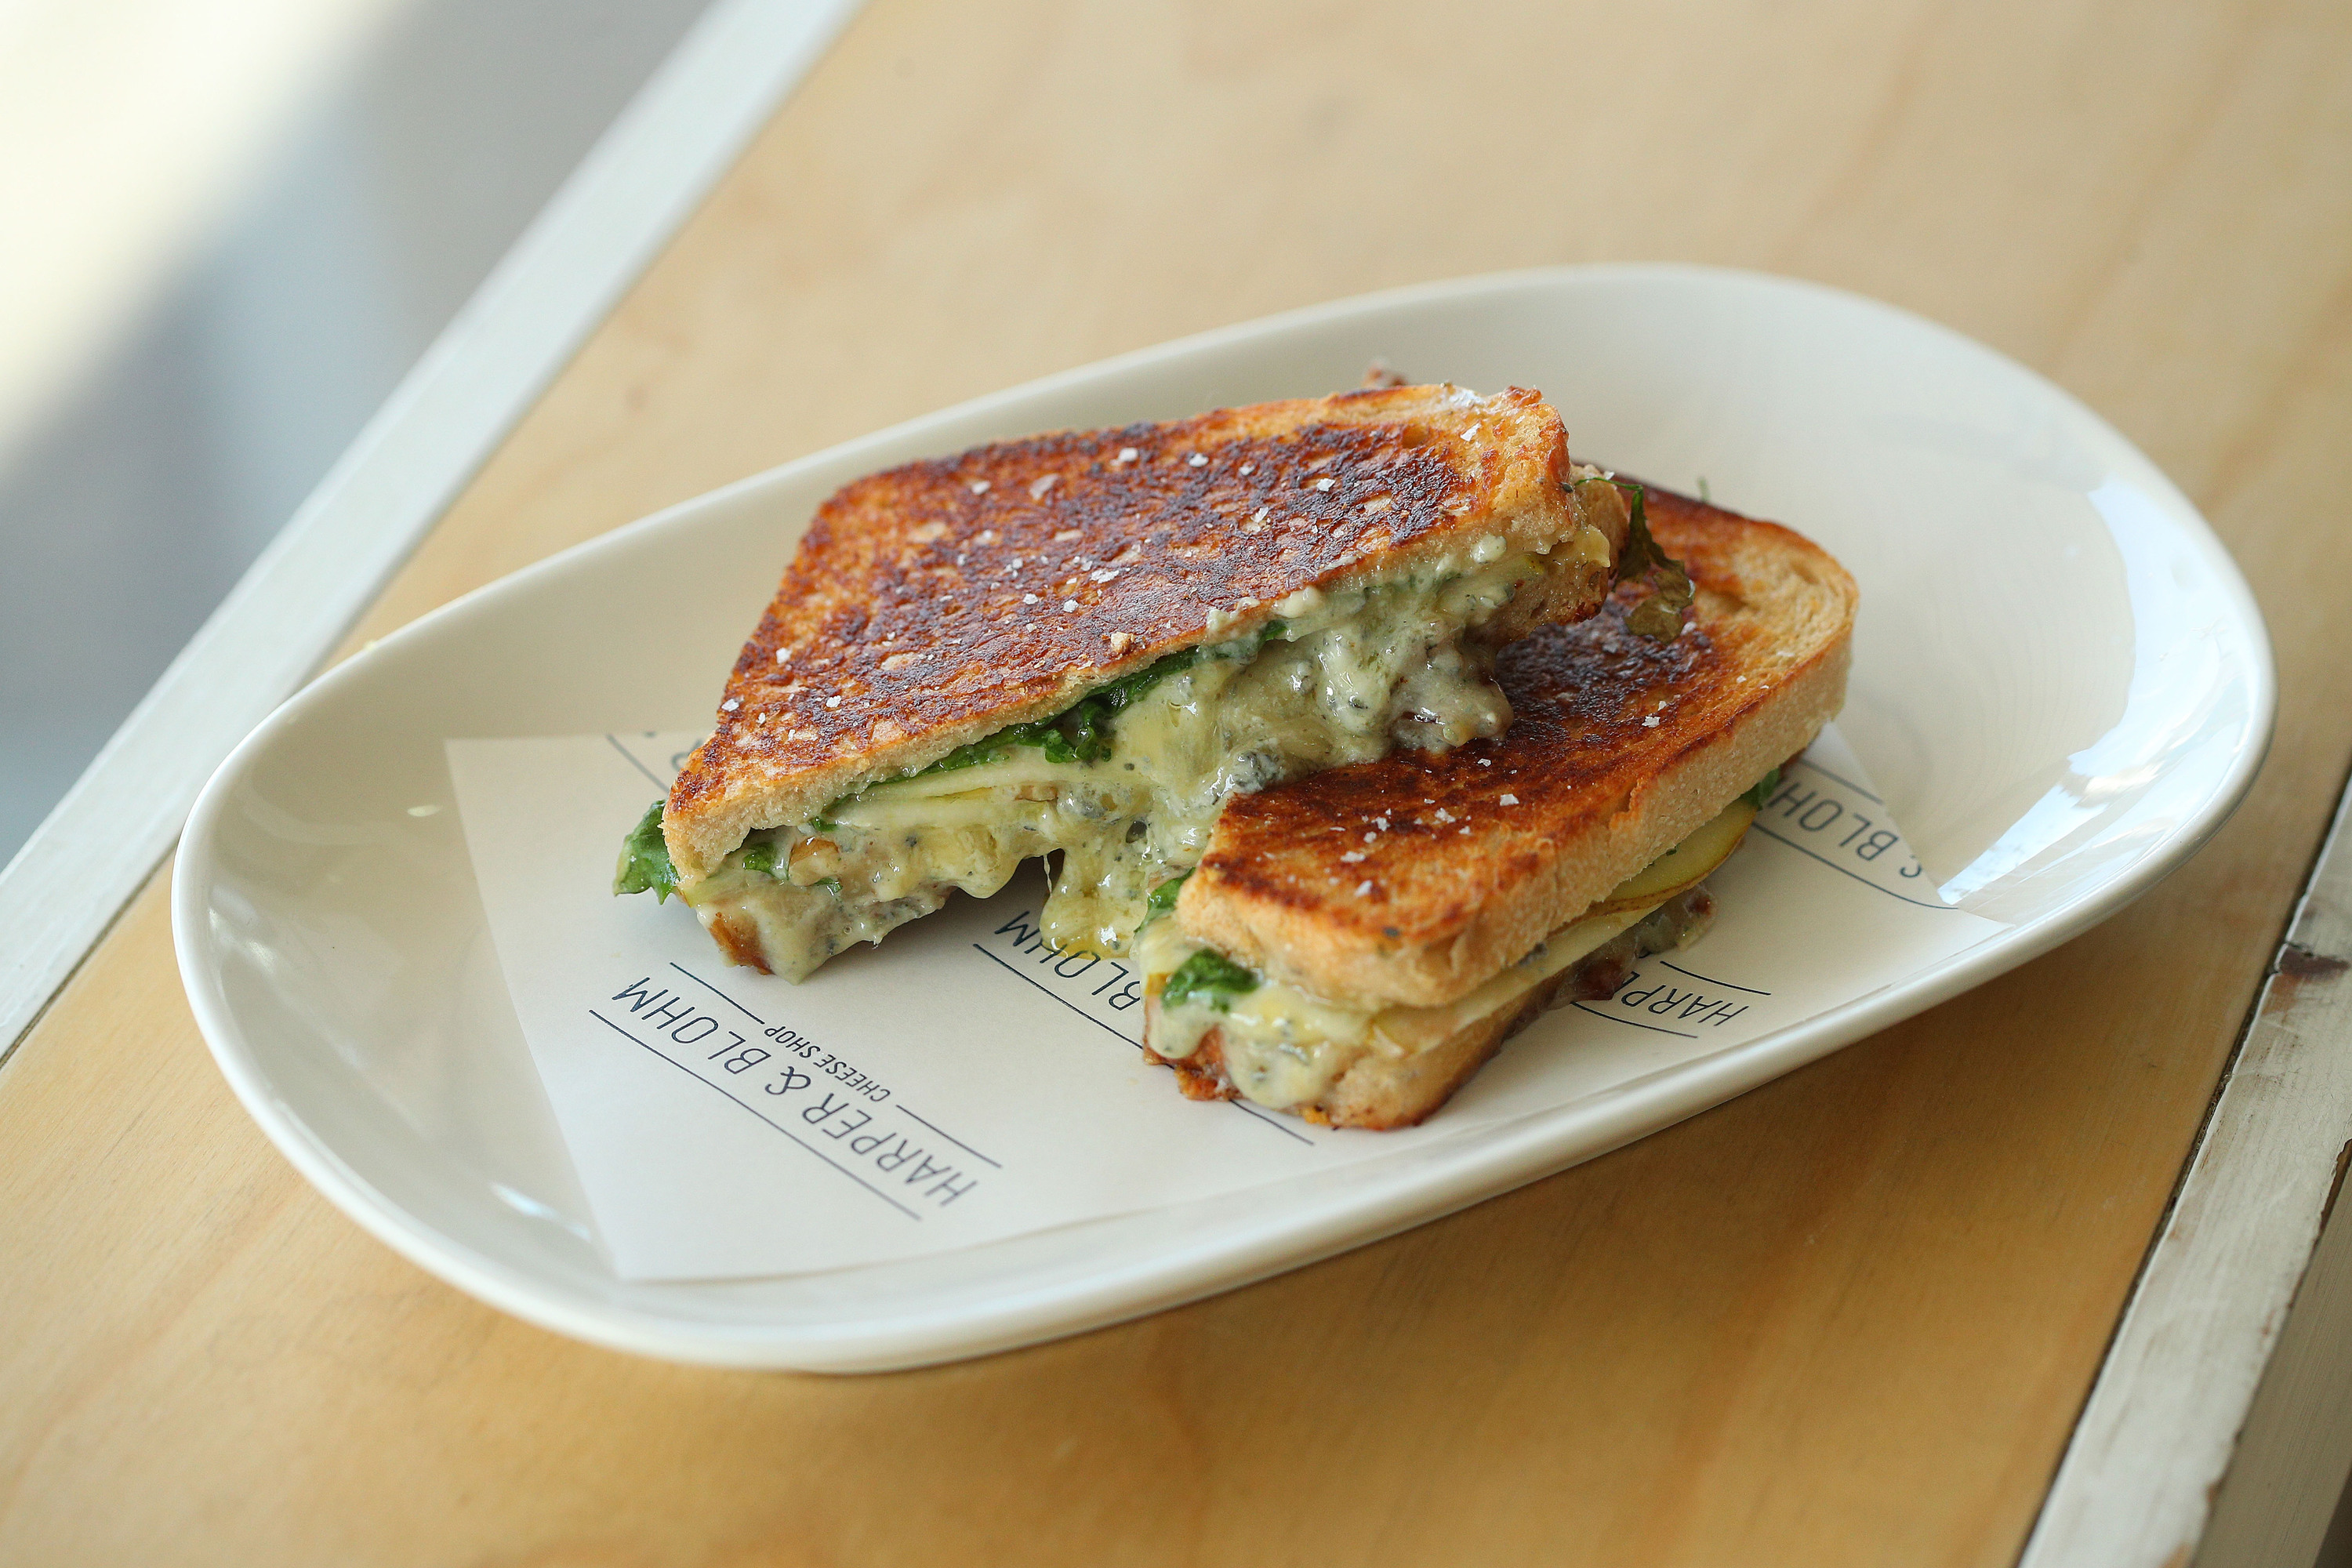 A blue cheese toastie